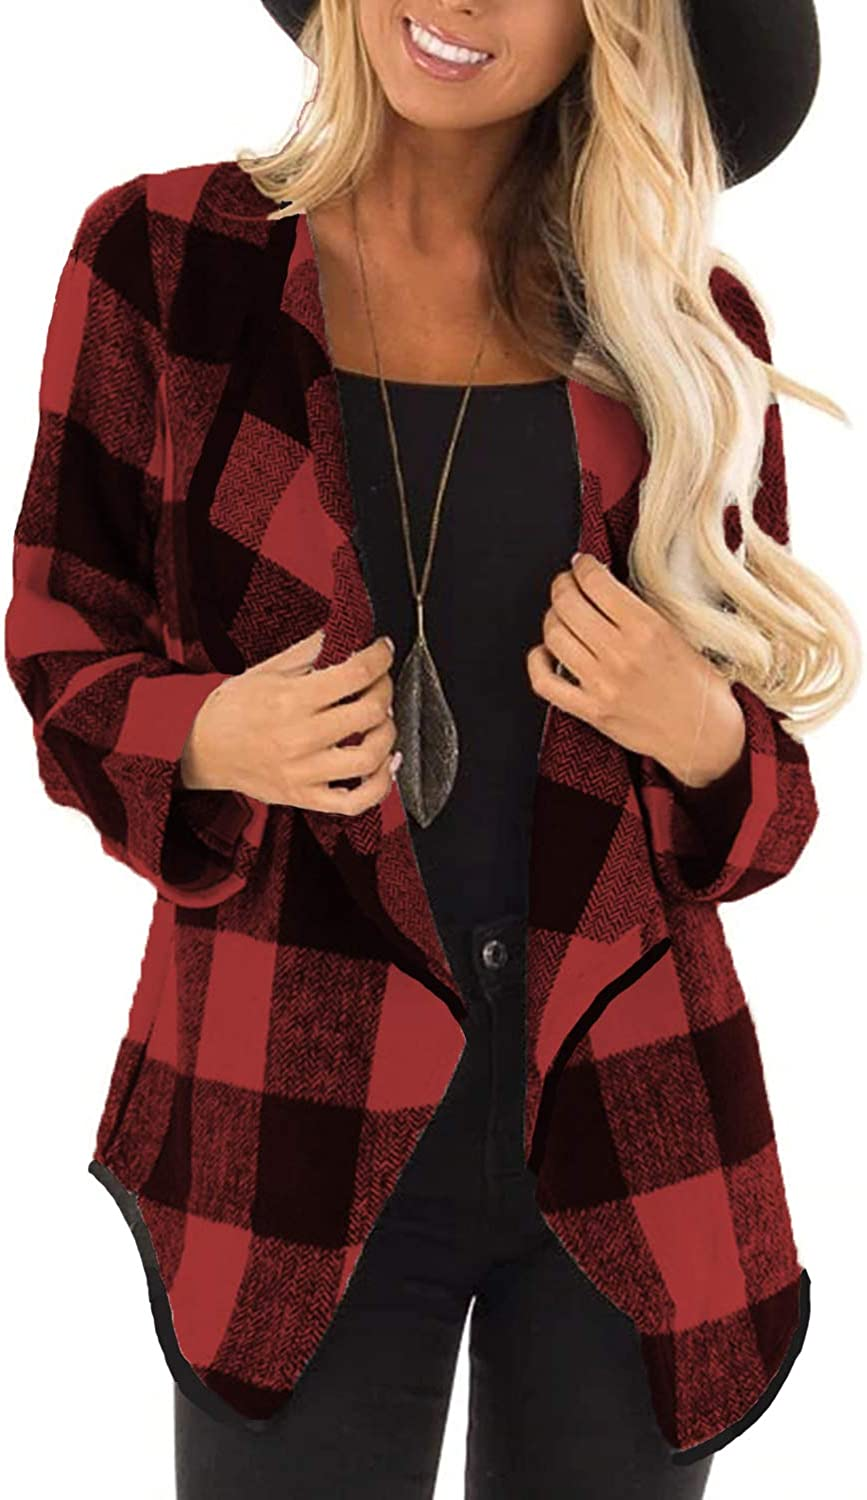 Deareba Womens Plaid Jacket Lapel Casual Long Sleeve Open Front Cardigans Coat Pockets